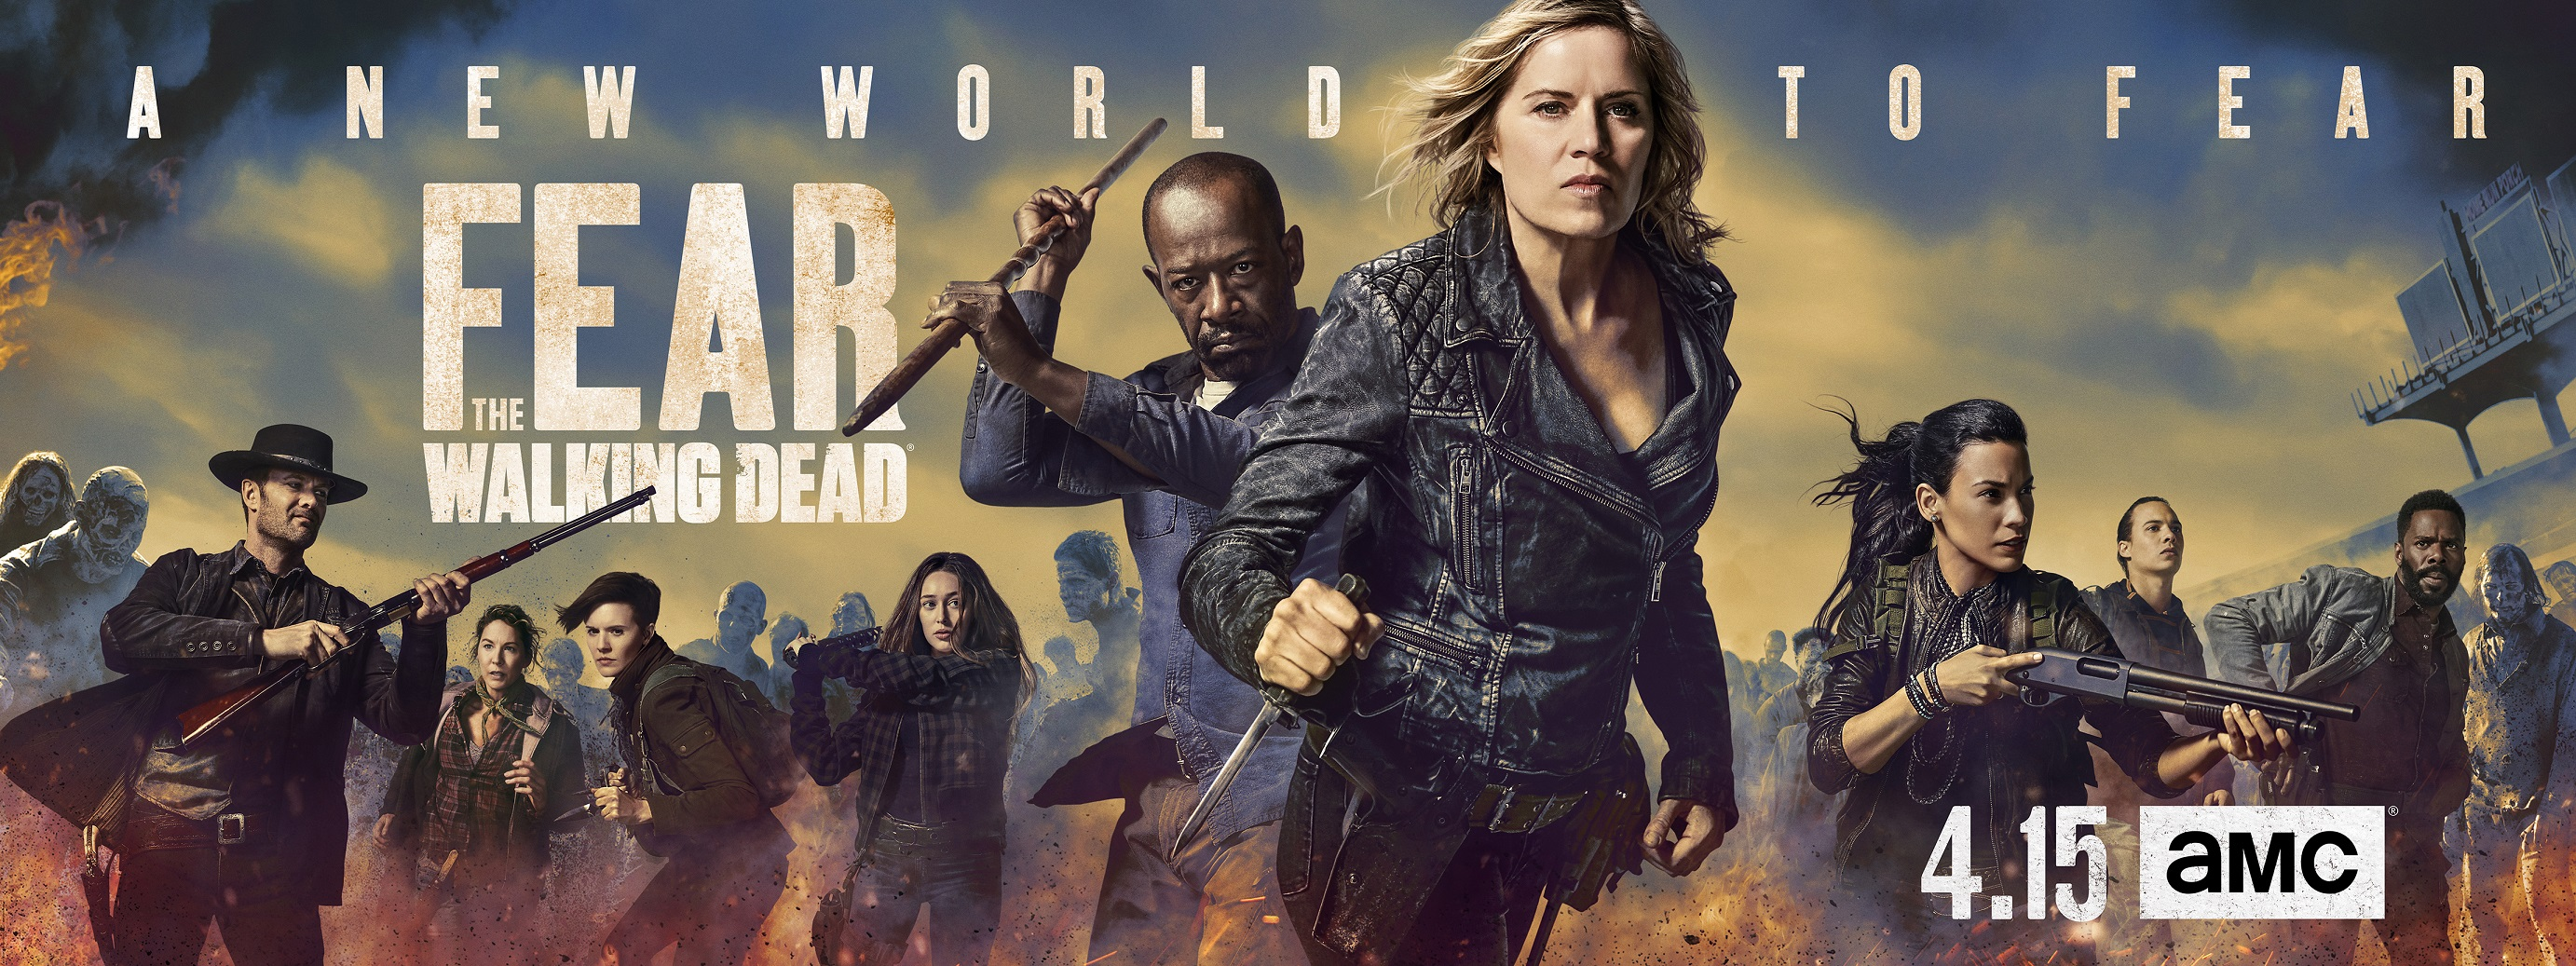 Fear the Walking Dead - Season 4 Key Art - A New World to Fear ...